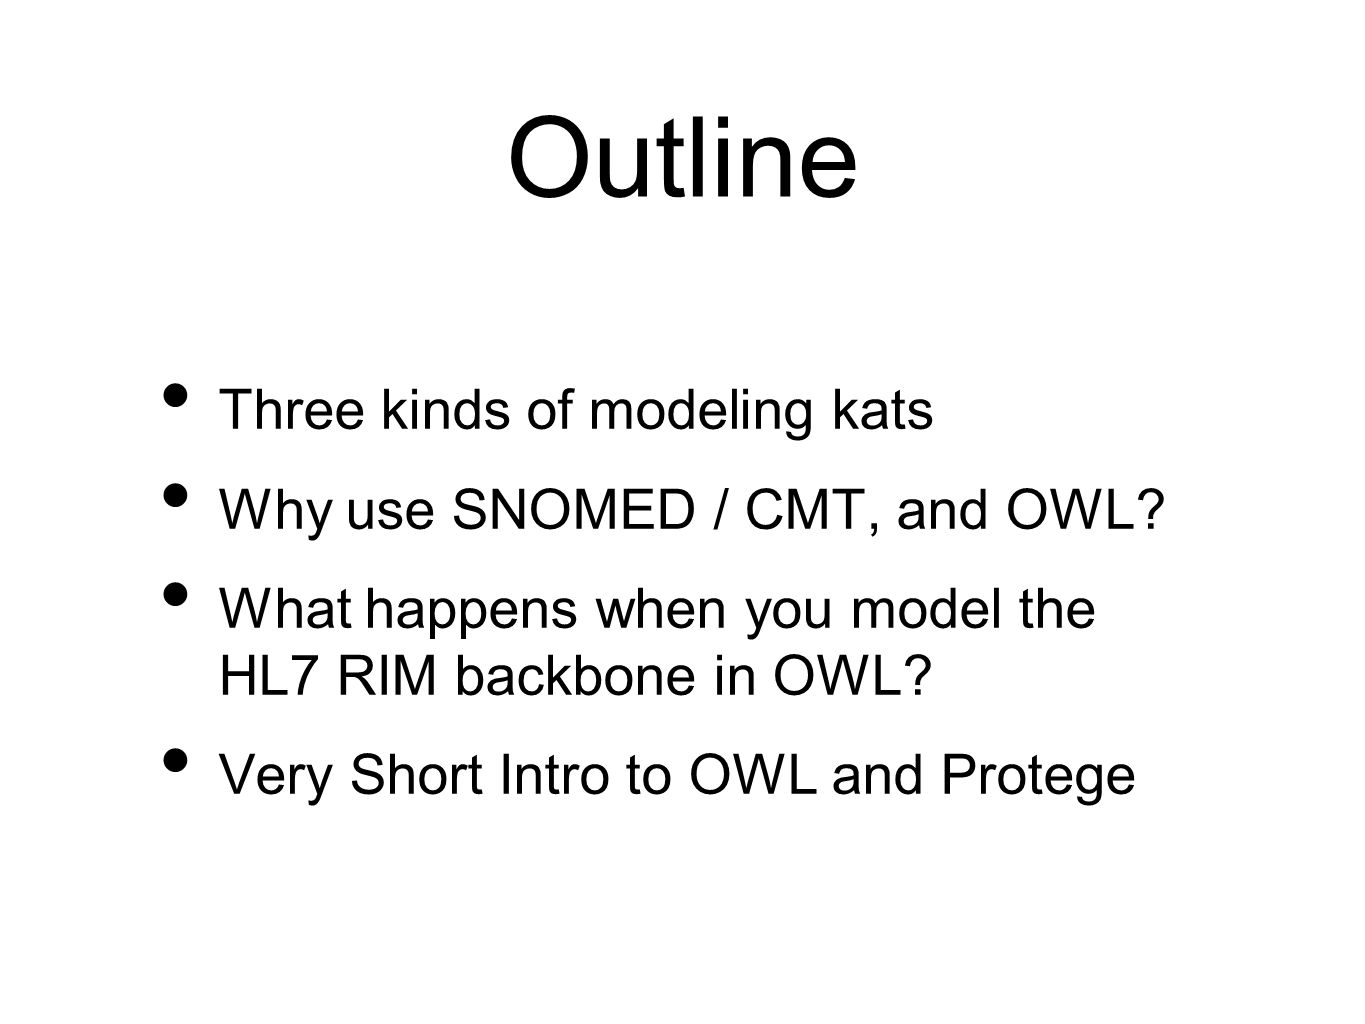 Outline Three kinds of modeling kats Why use SNOMED / CMT, and OWL? What happens when you model the HL7 RIM backbone in OWL? Very Short Intro to OWL a